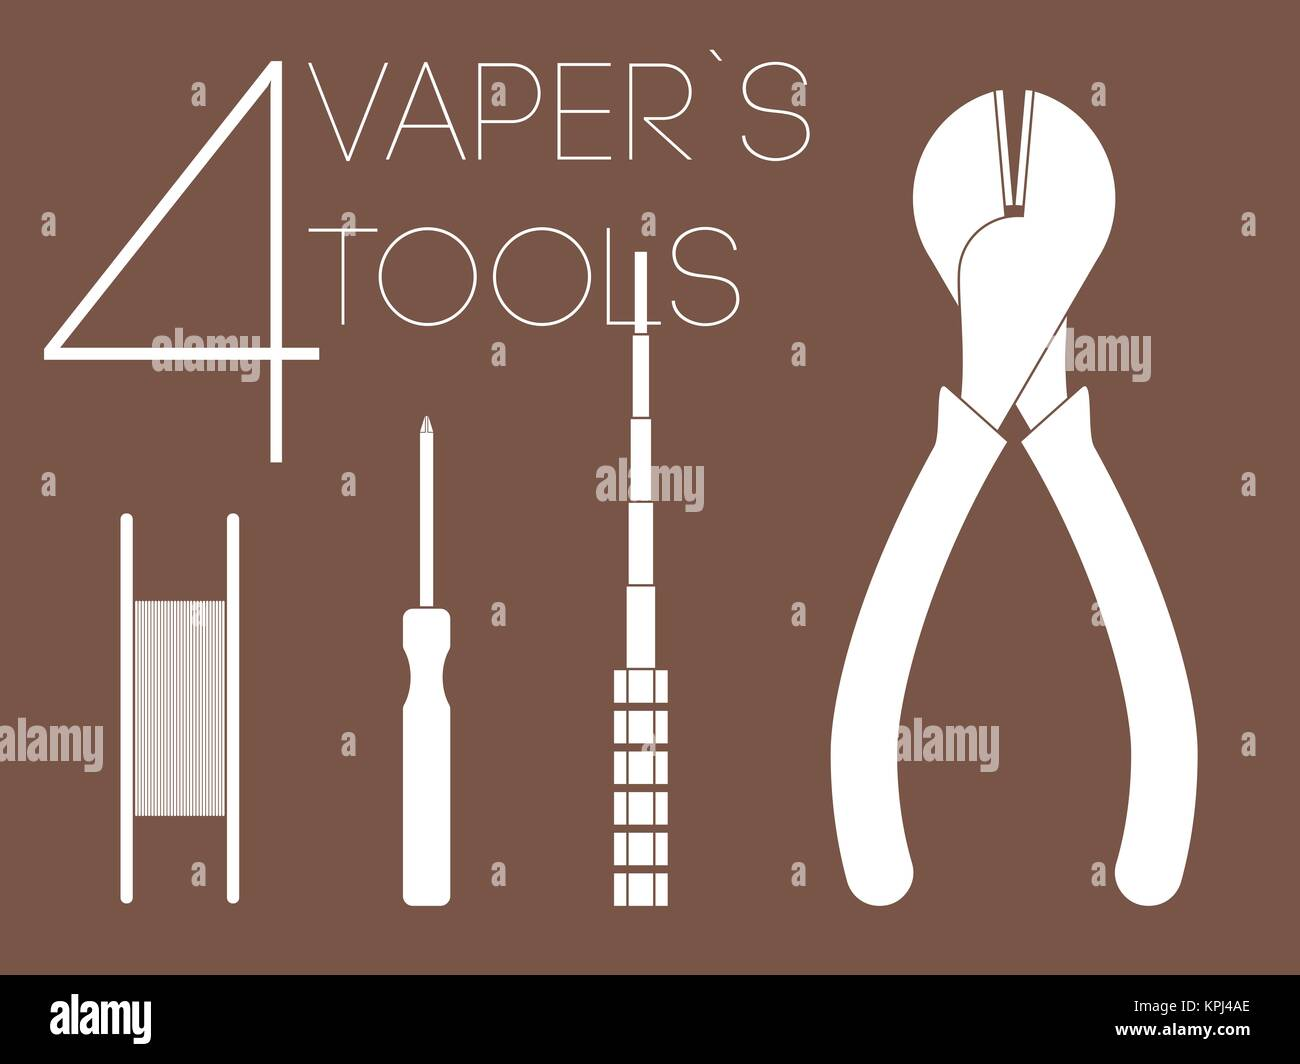 4 one color vaper tools set - Stock Image